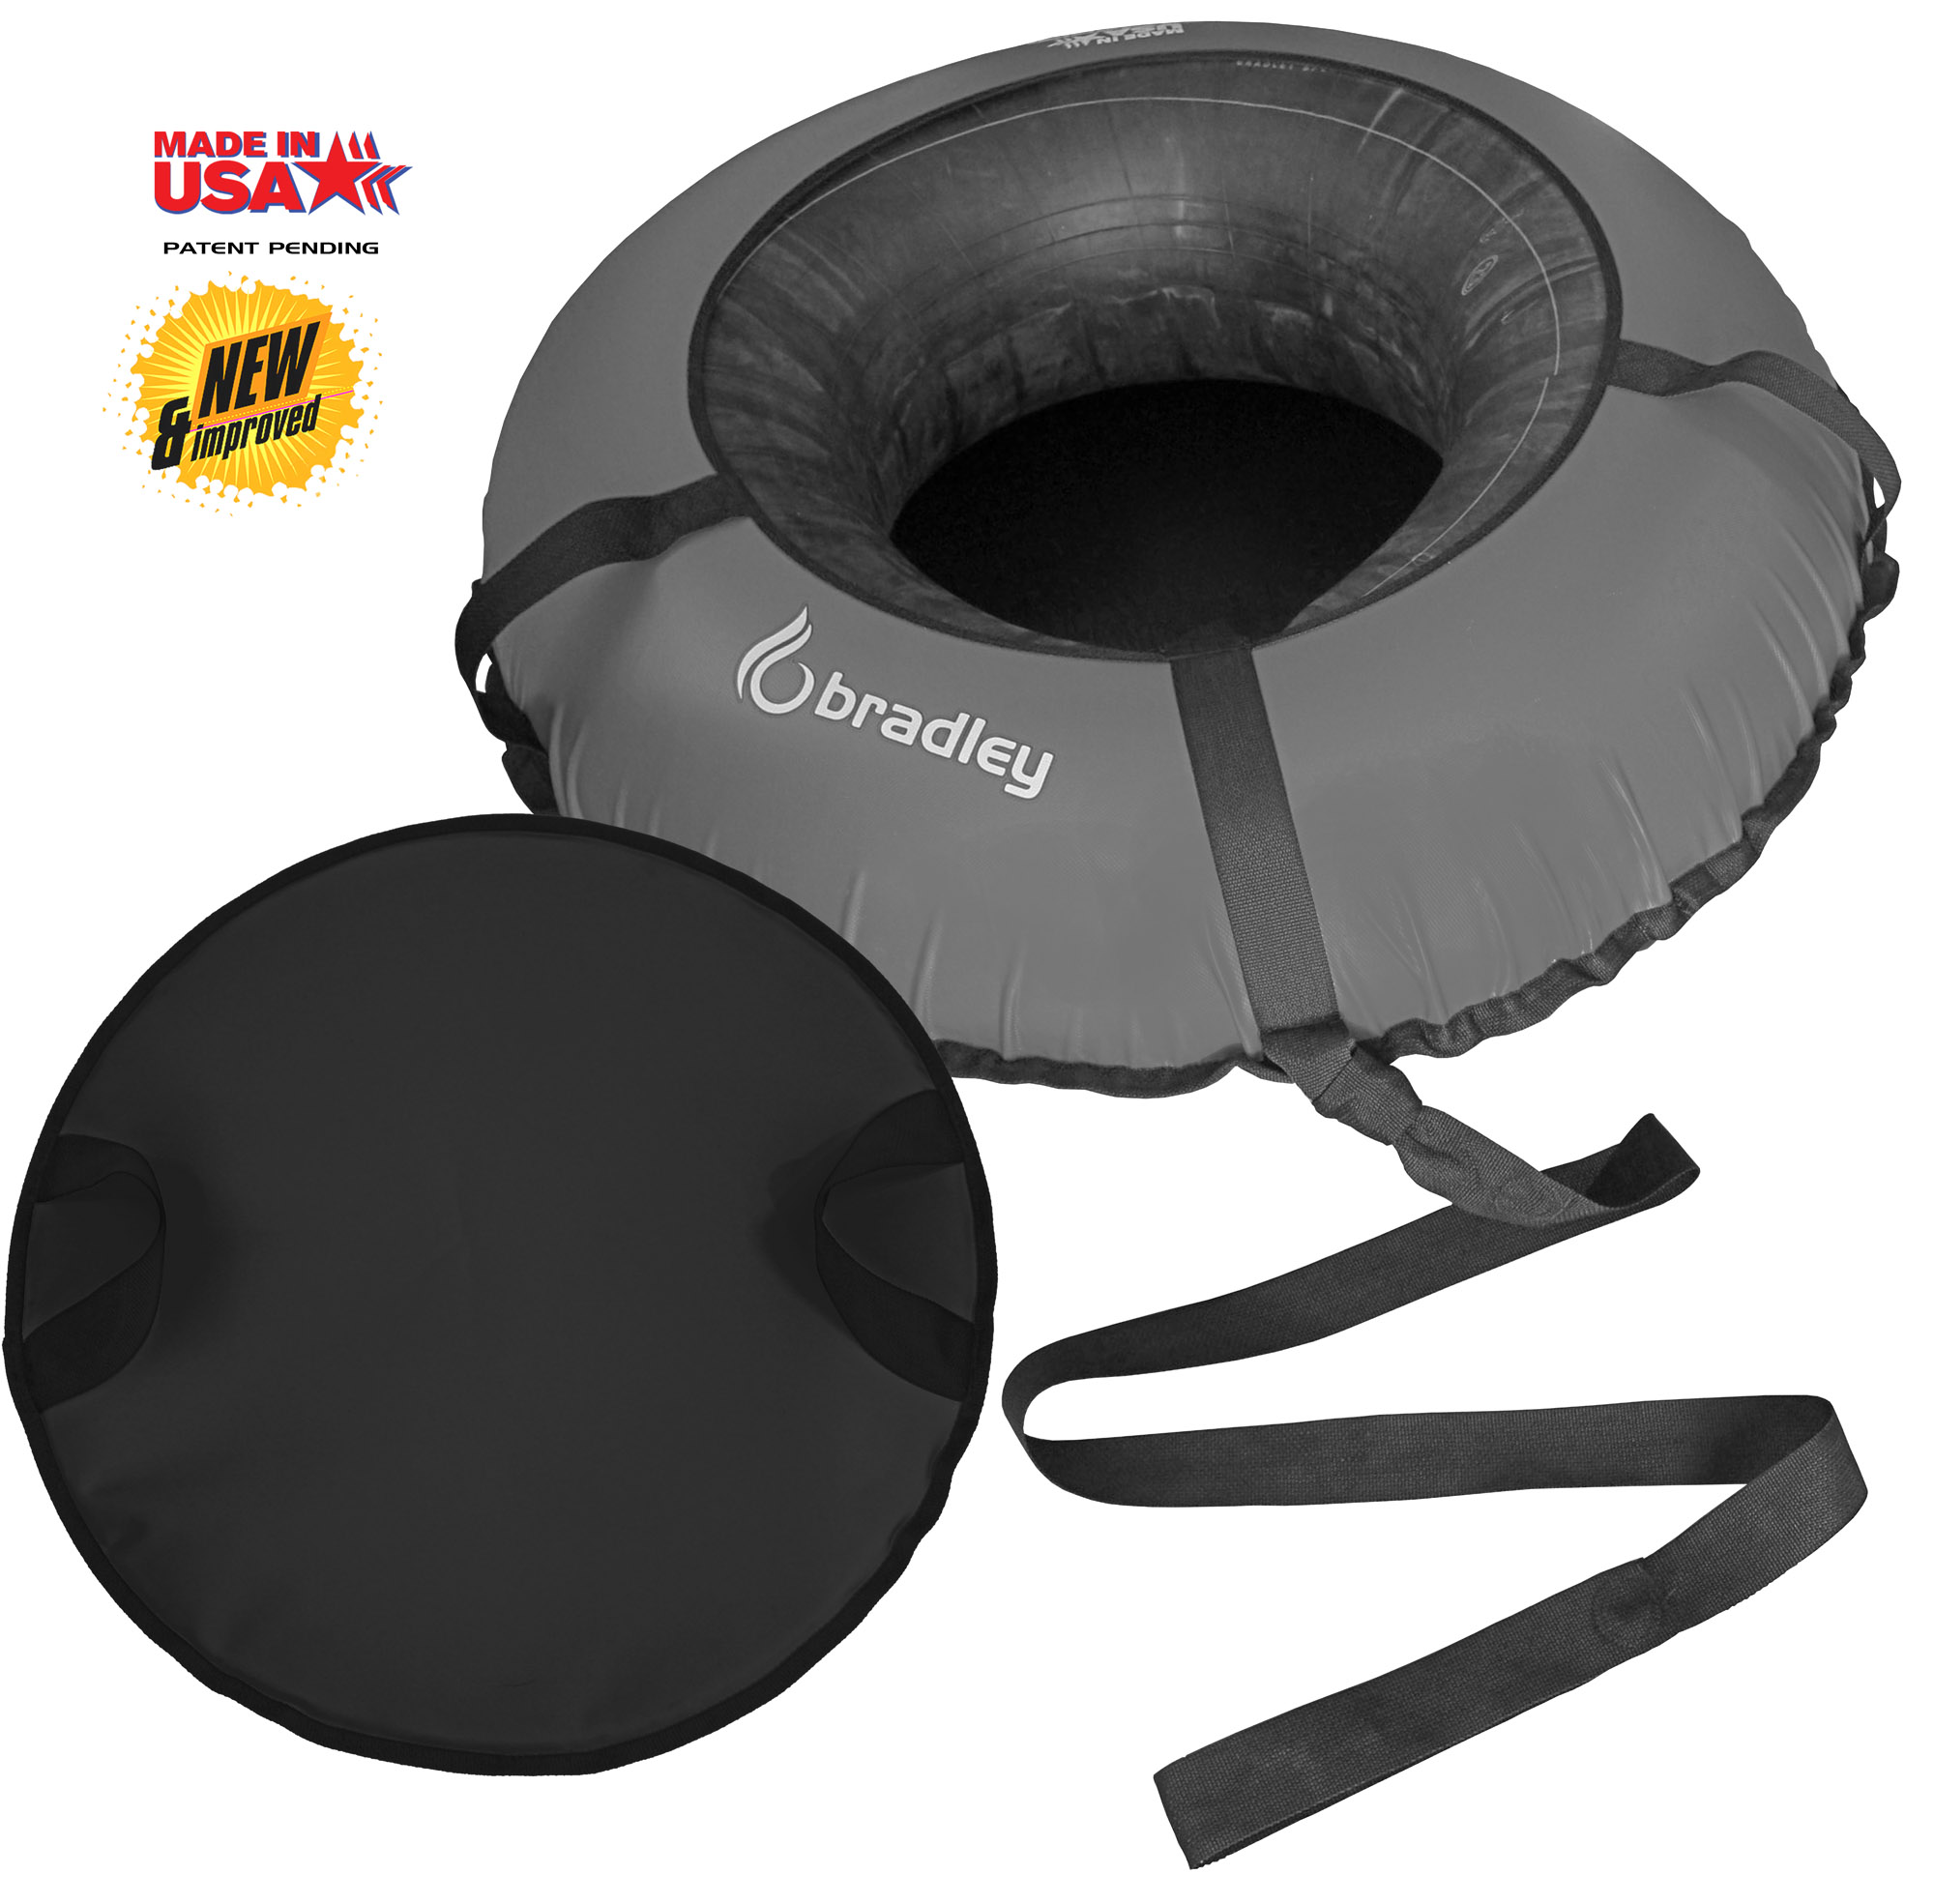 "Bradley Snow Tube Sled (Deluxe Edition) with 48"" Cover by Bradley"